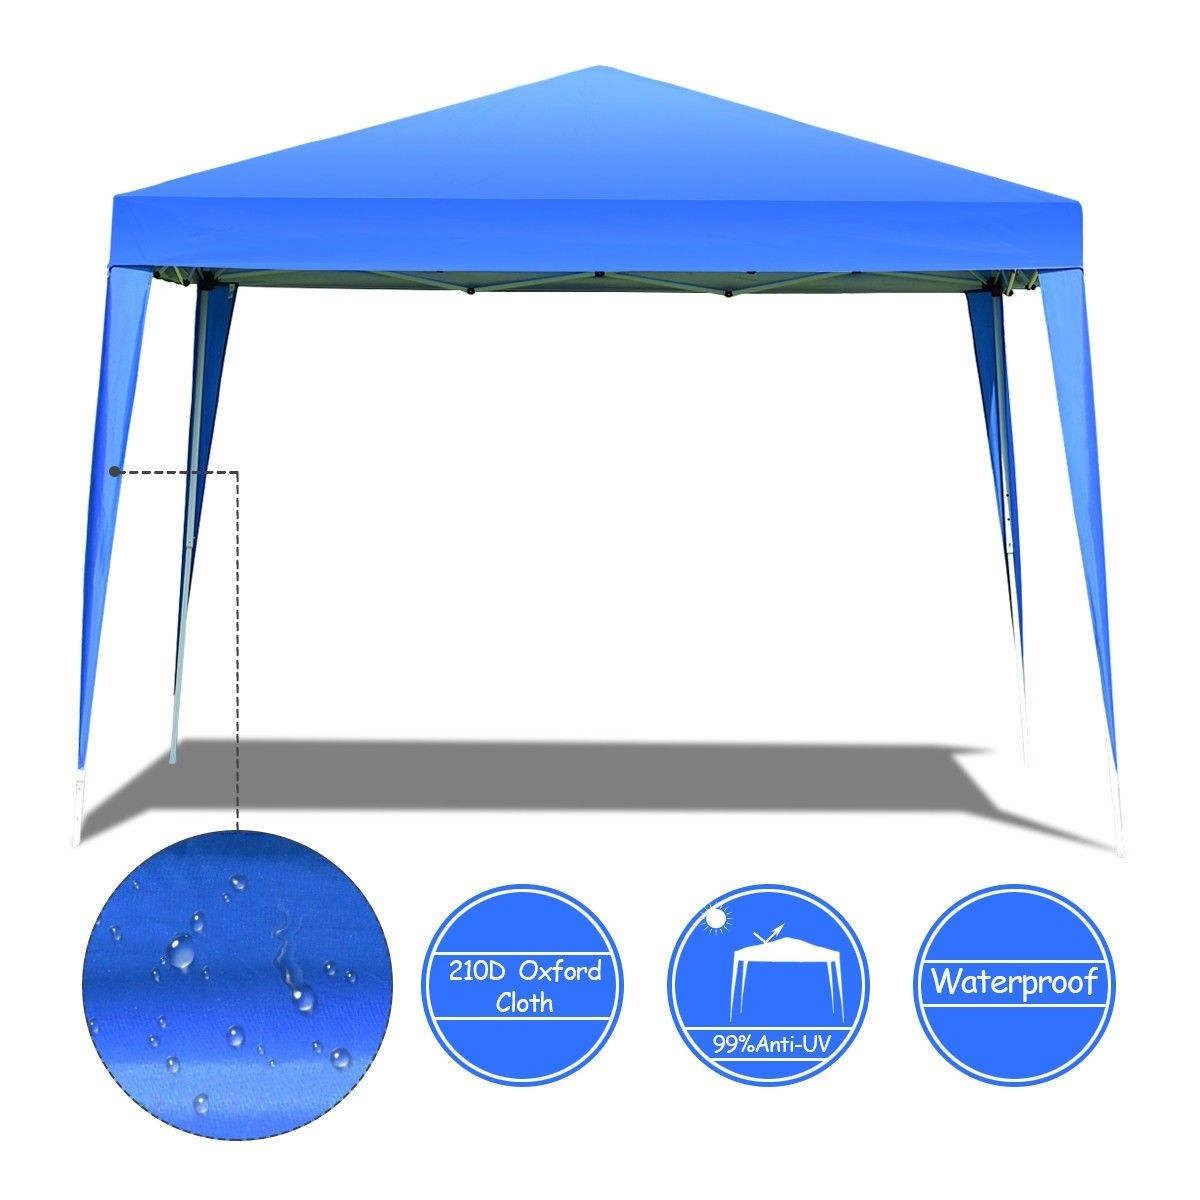 Outdoor Foldable Portable Shelter Gazebo Canopy Tent 57 95 Free Shipping Look At Our Wonderful Canopy Tent It Ha Gazebo Canopy Portable Shelter Canopy Tent